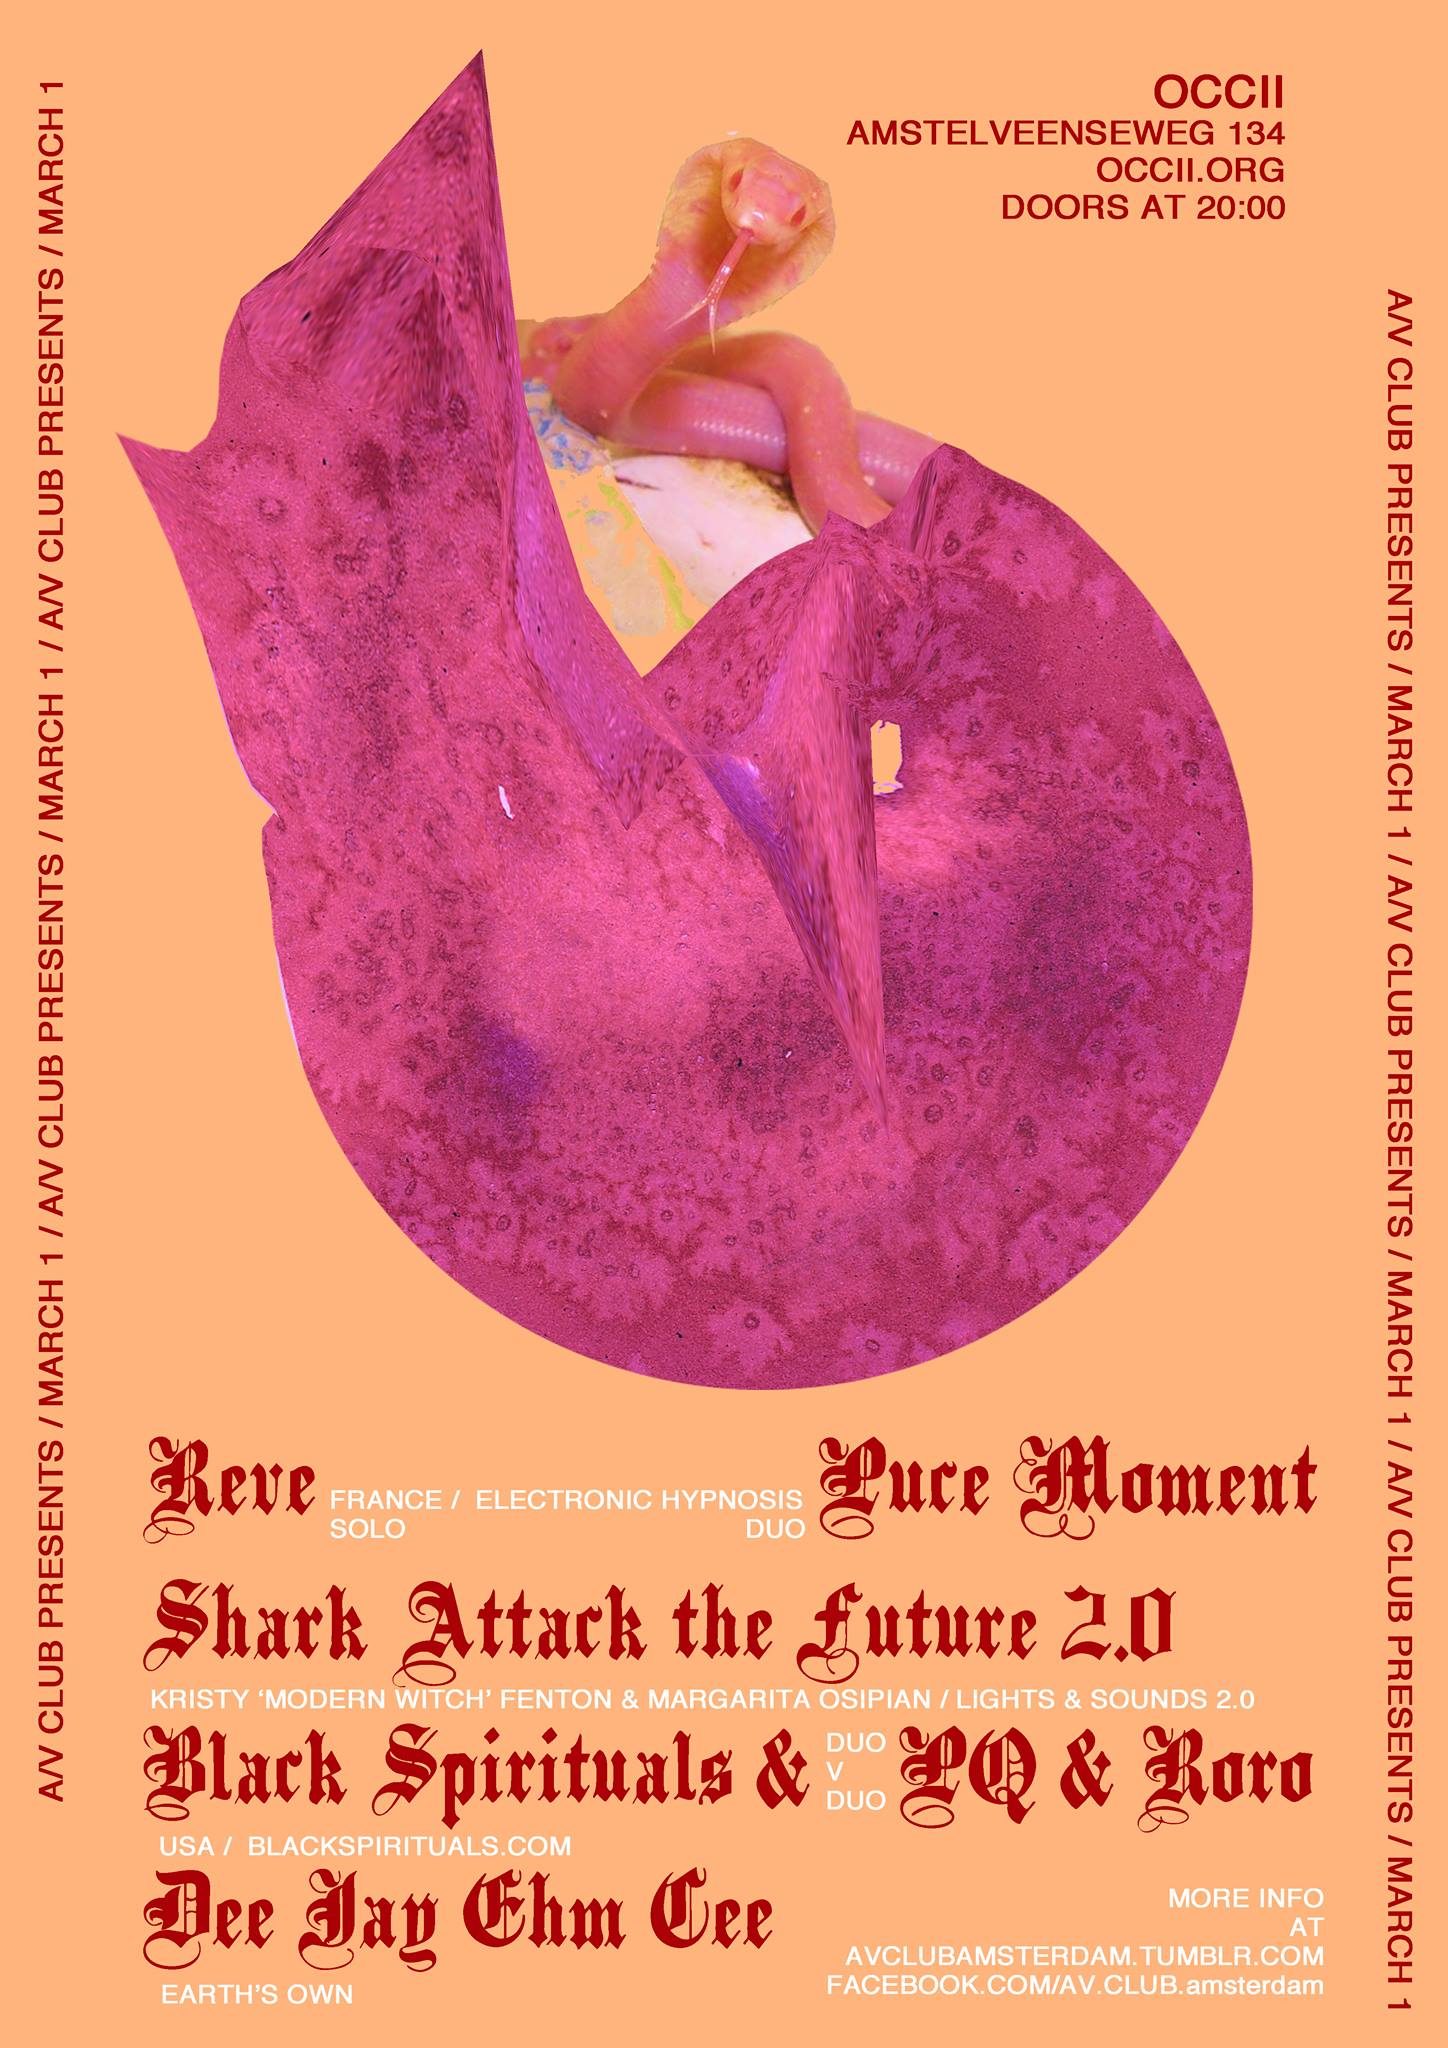 RÊVE (fr) + PUCE MOMENT (fr) + SHARK ATTACK THE FUTURE 2.0 + BLACK SPIRITUALS versus LUC & RORO + DEE JAY EHM CEE aka DON McGREEVY (Earth/MMOB)